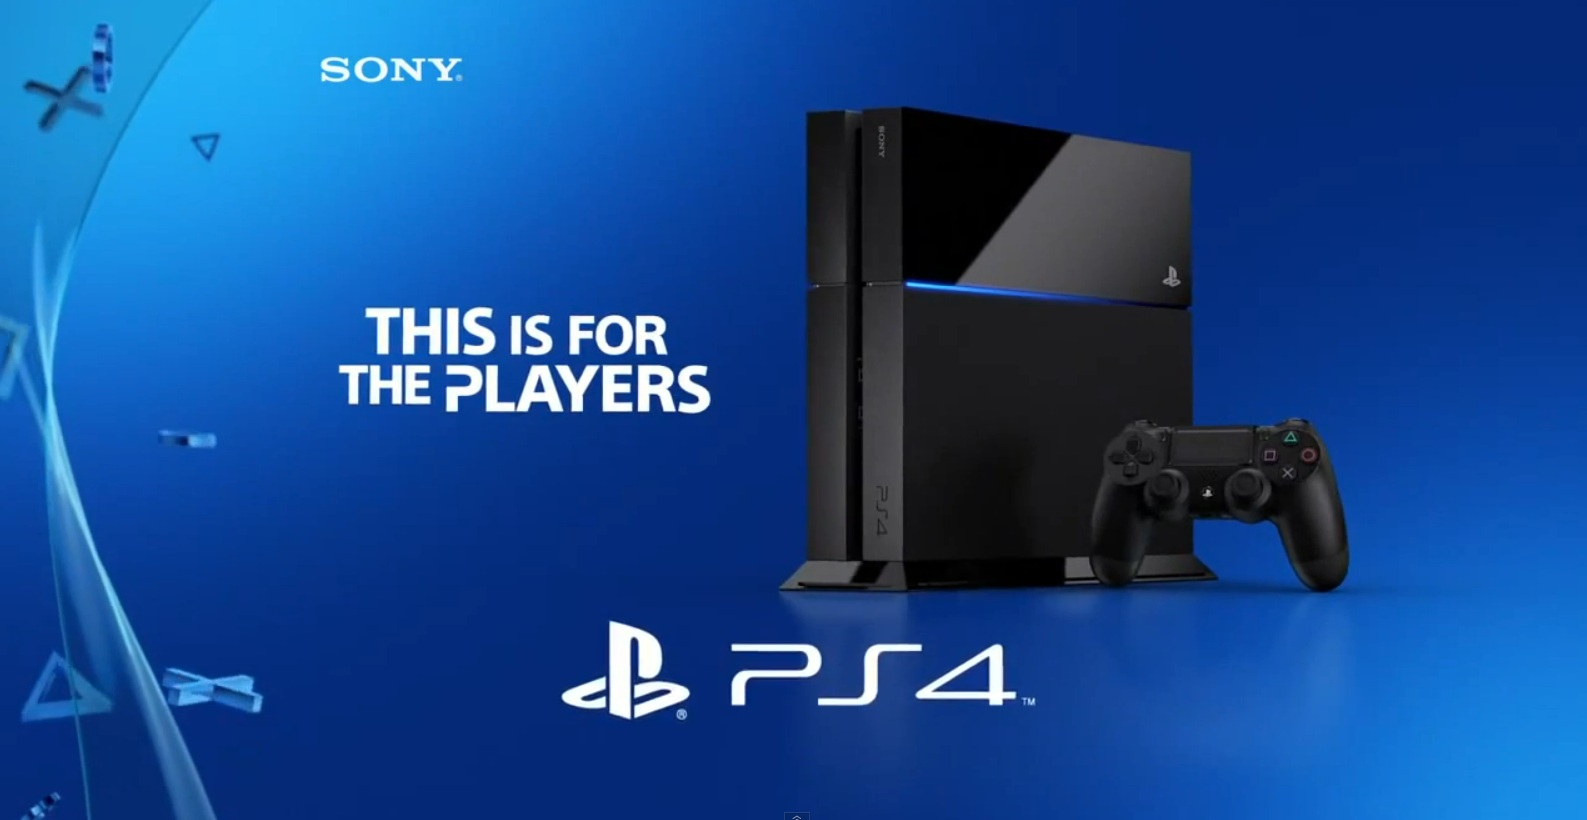 ps4-this-is-for-the-players-new-slogan-2014-criticsight